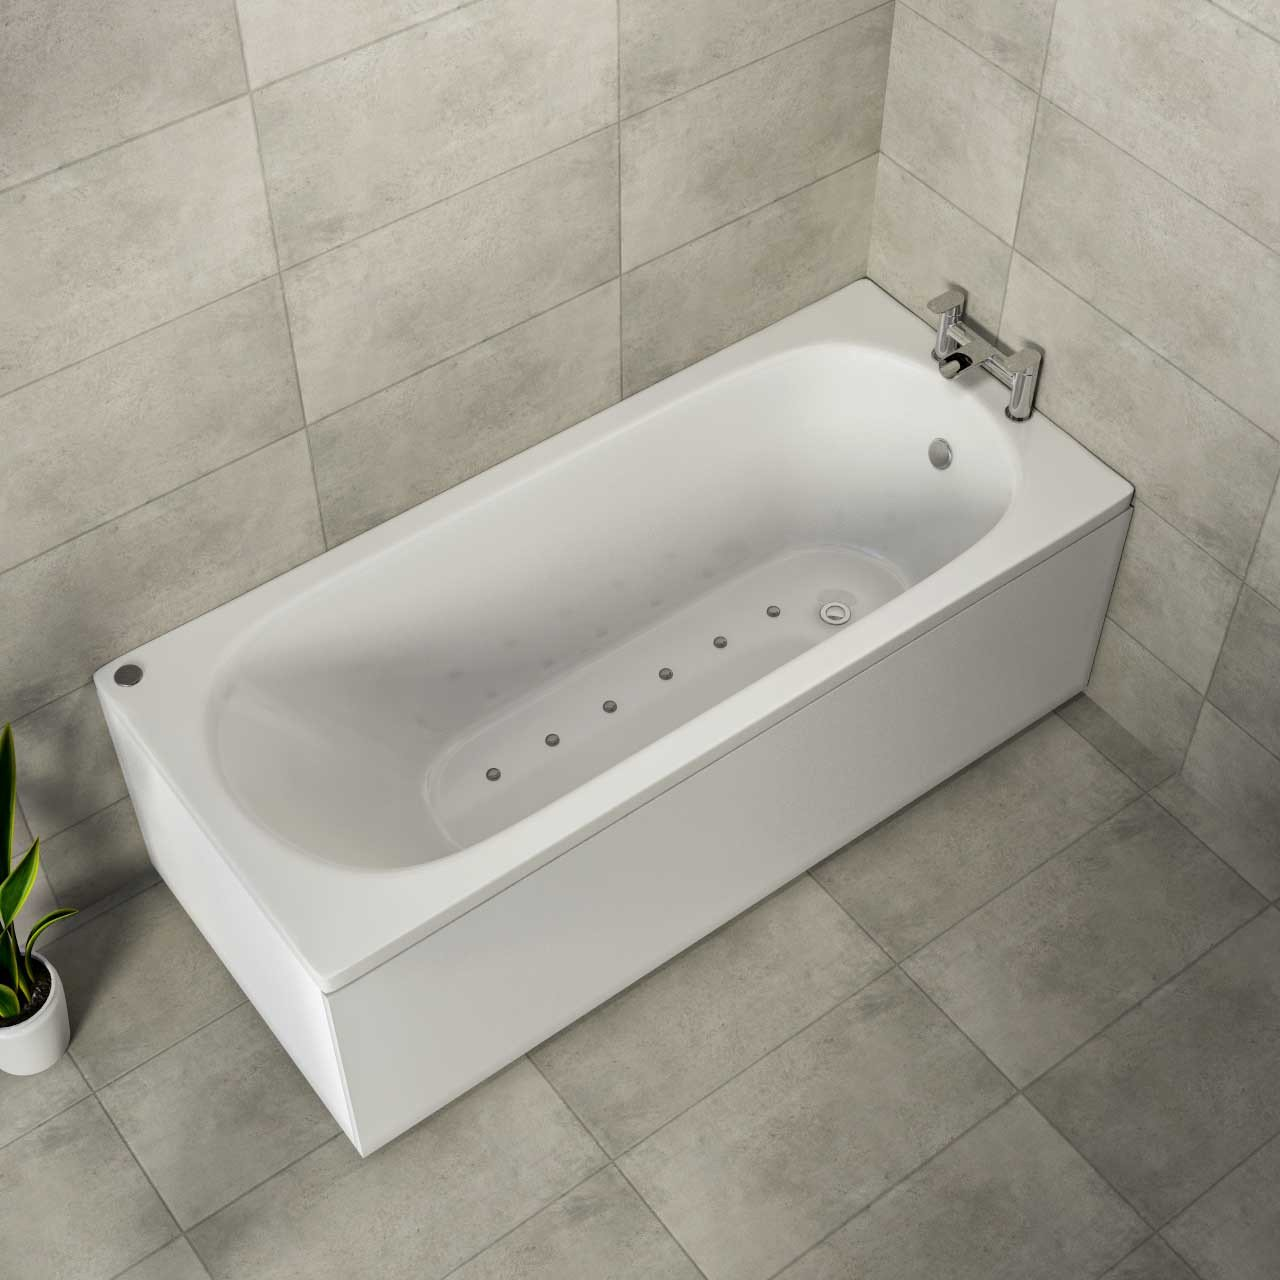 Compact End Tap 12 Jet Chrome Easifit Spa Whirlpool Bath 1600x700mm